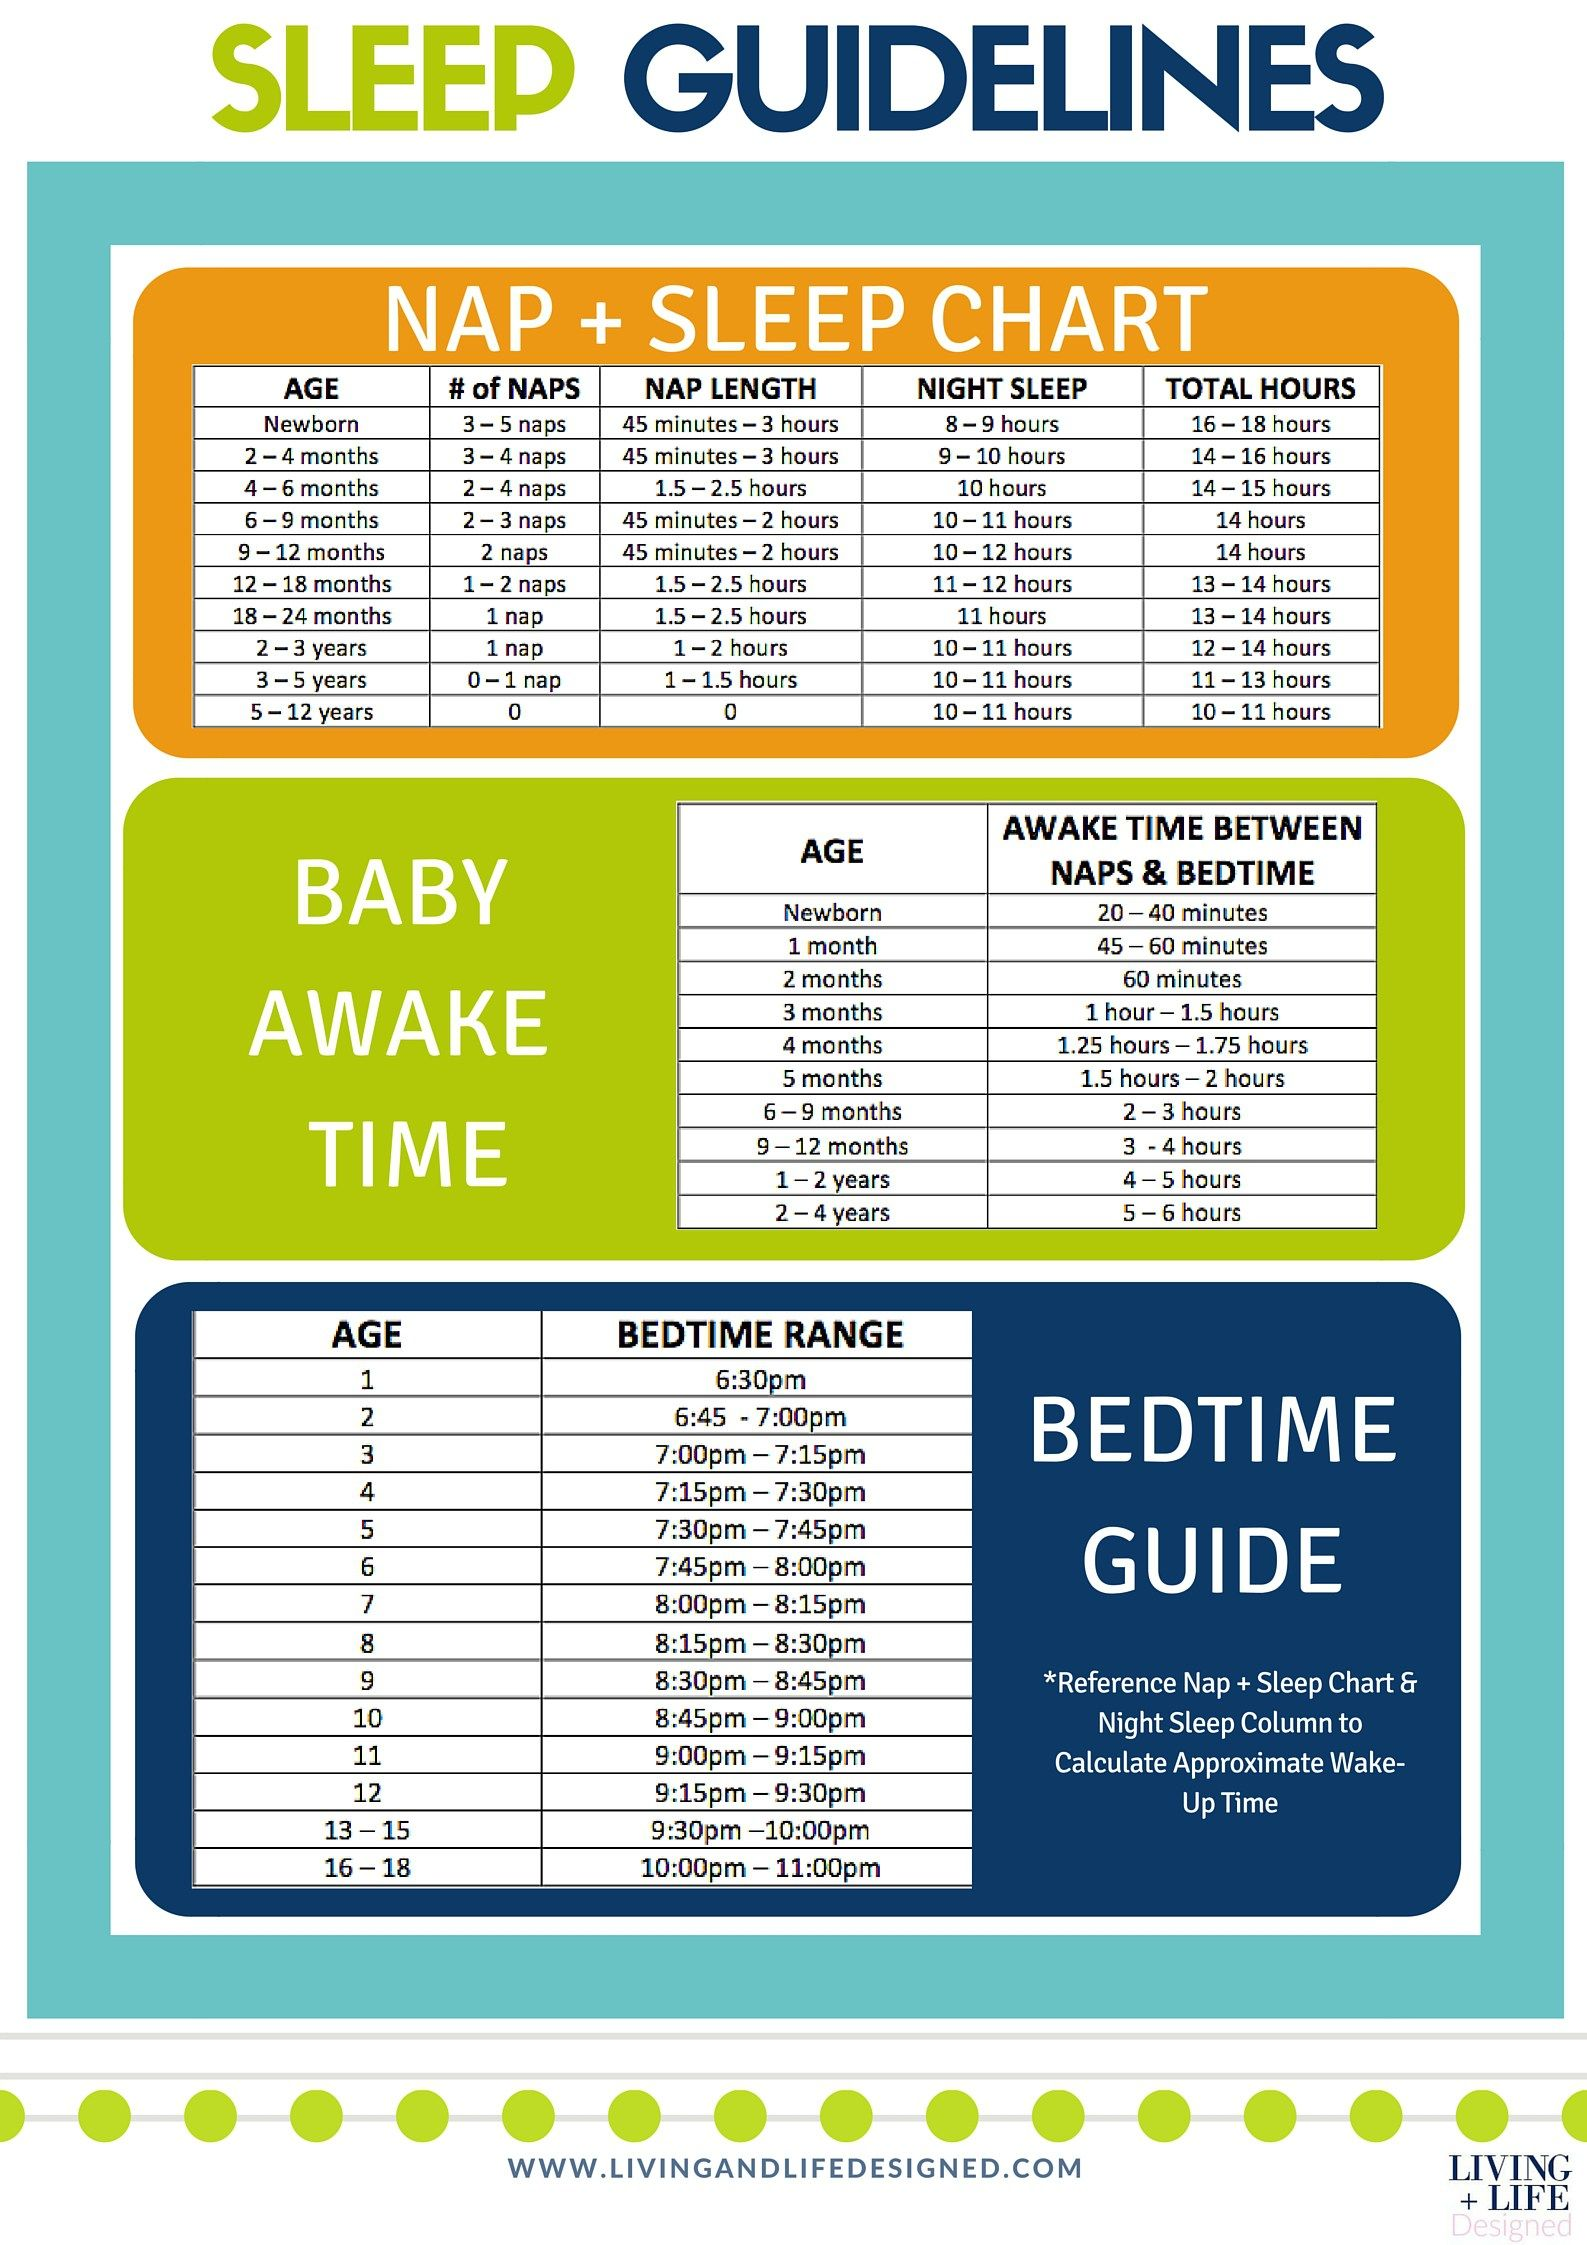 Babywise schedule sample schedules broken down by month newborn babywise schedule sample schedules broken down by month newborn 4 months 4 6 months and 6 9 months by colette diy baby pinterest babies nvjuhfo Image collections